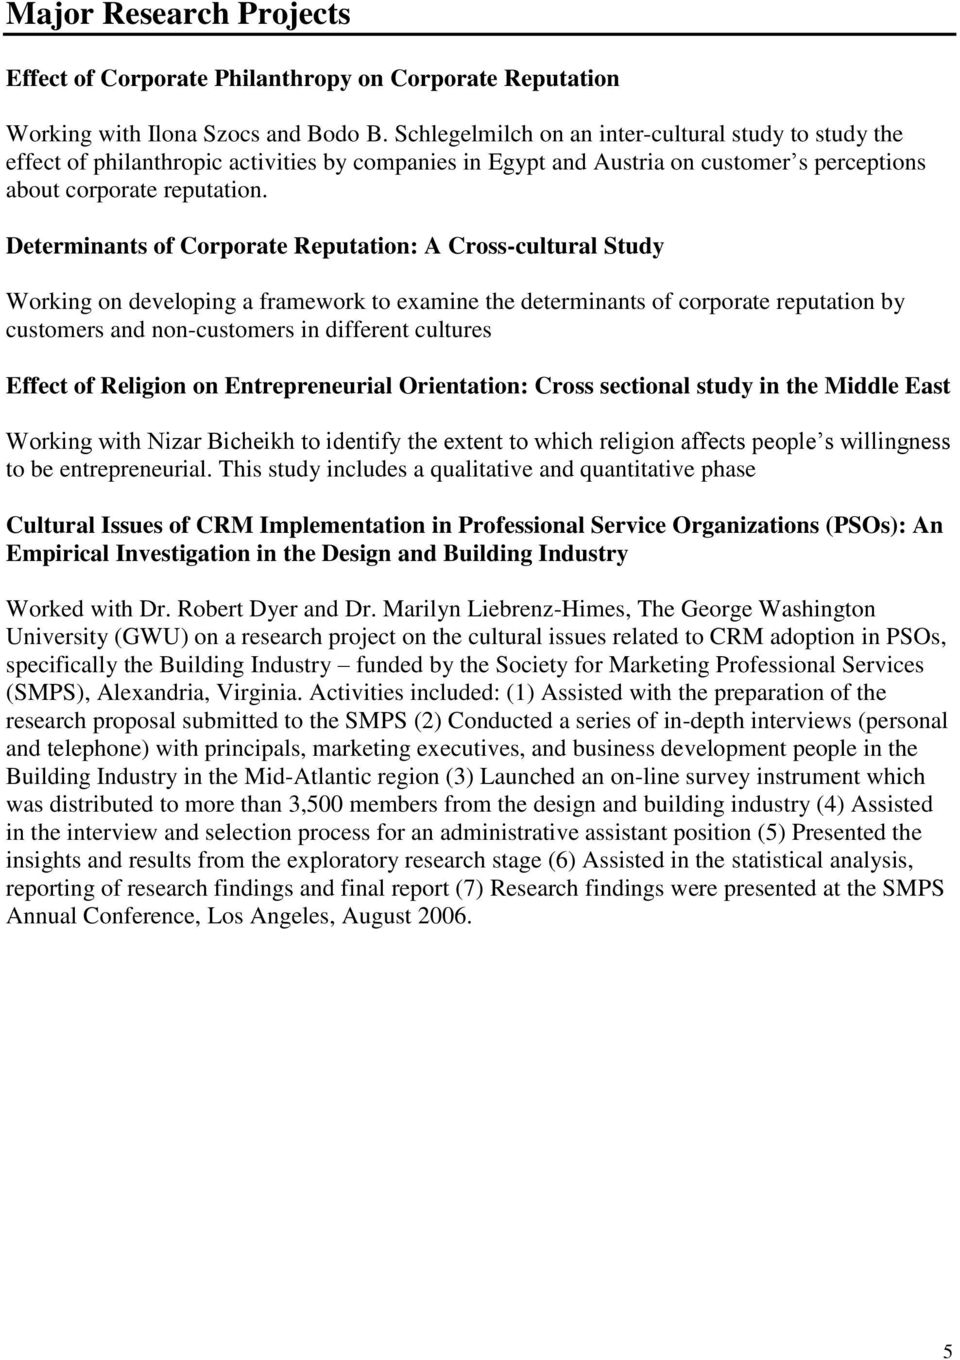 Determinants of Corporate Reputation: A Cross-cultural Study Working on developing a framework to examine the determinants of corporate reputation by customers and non-customers in different cultures